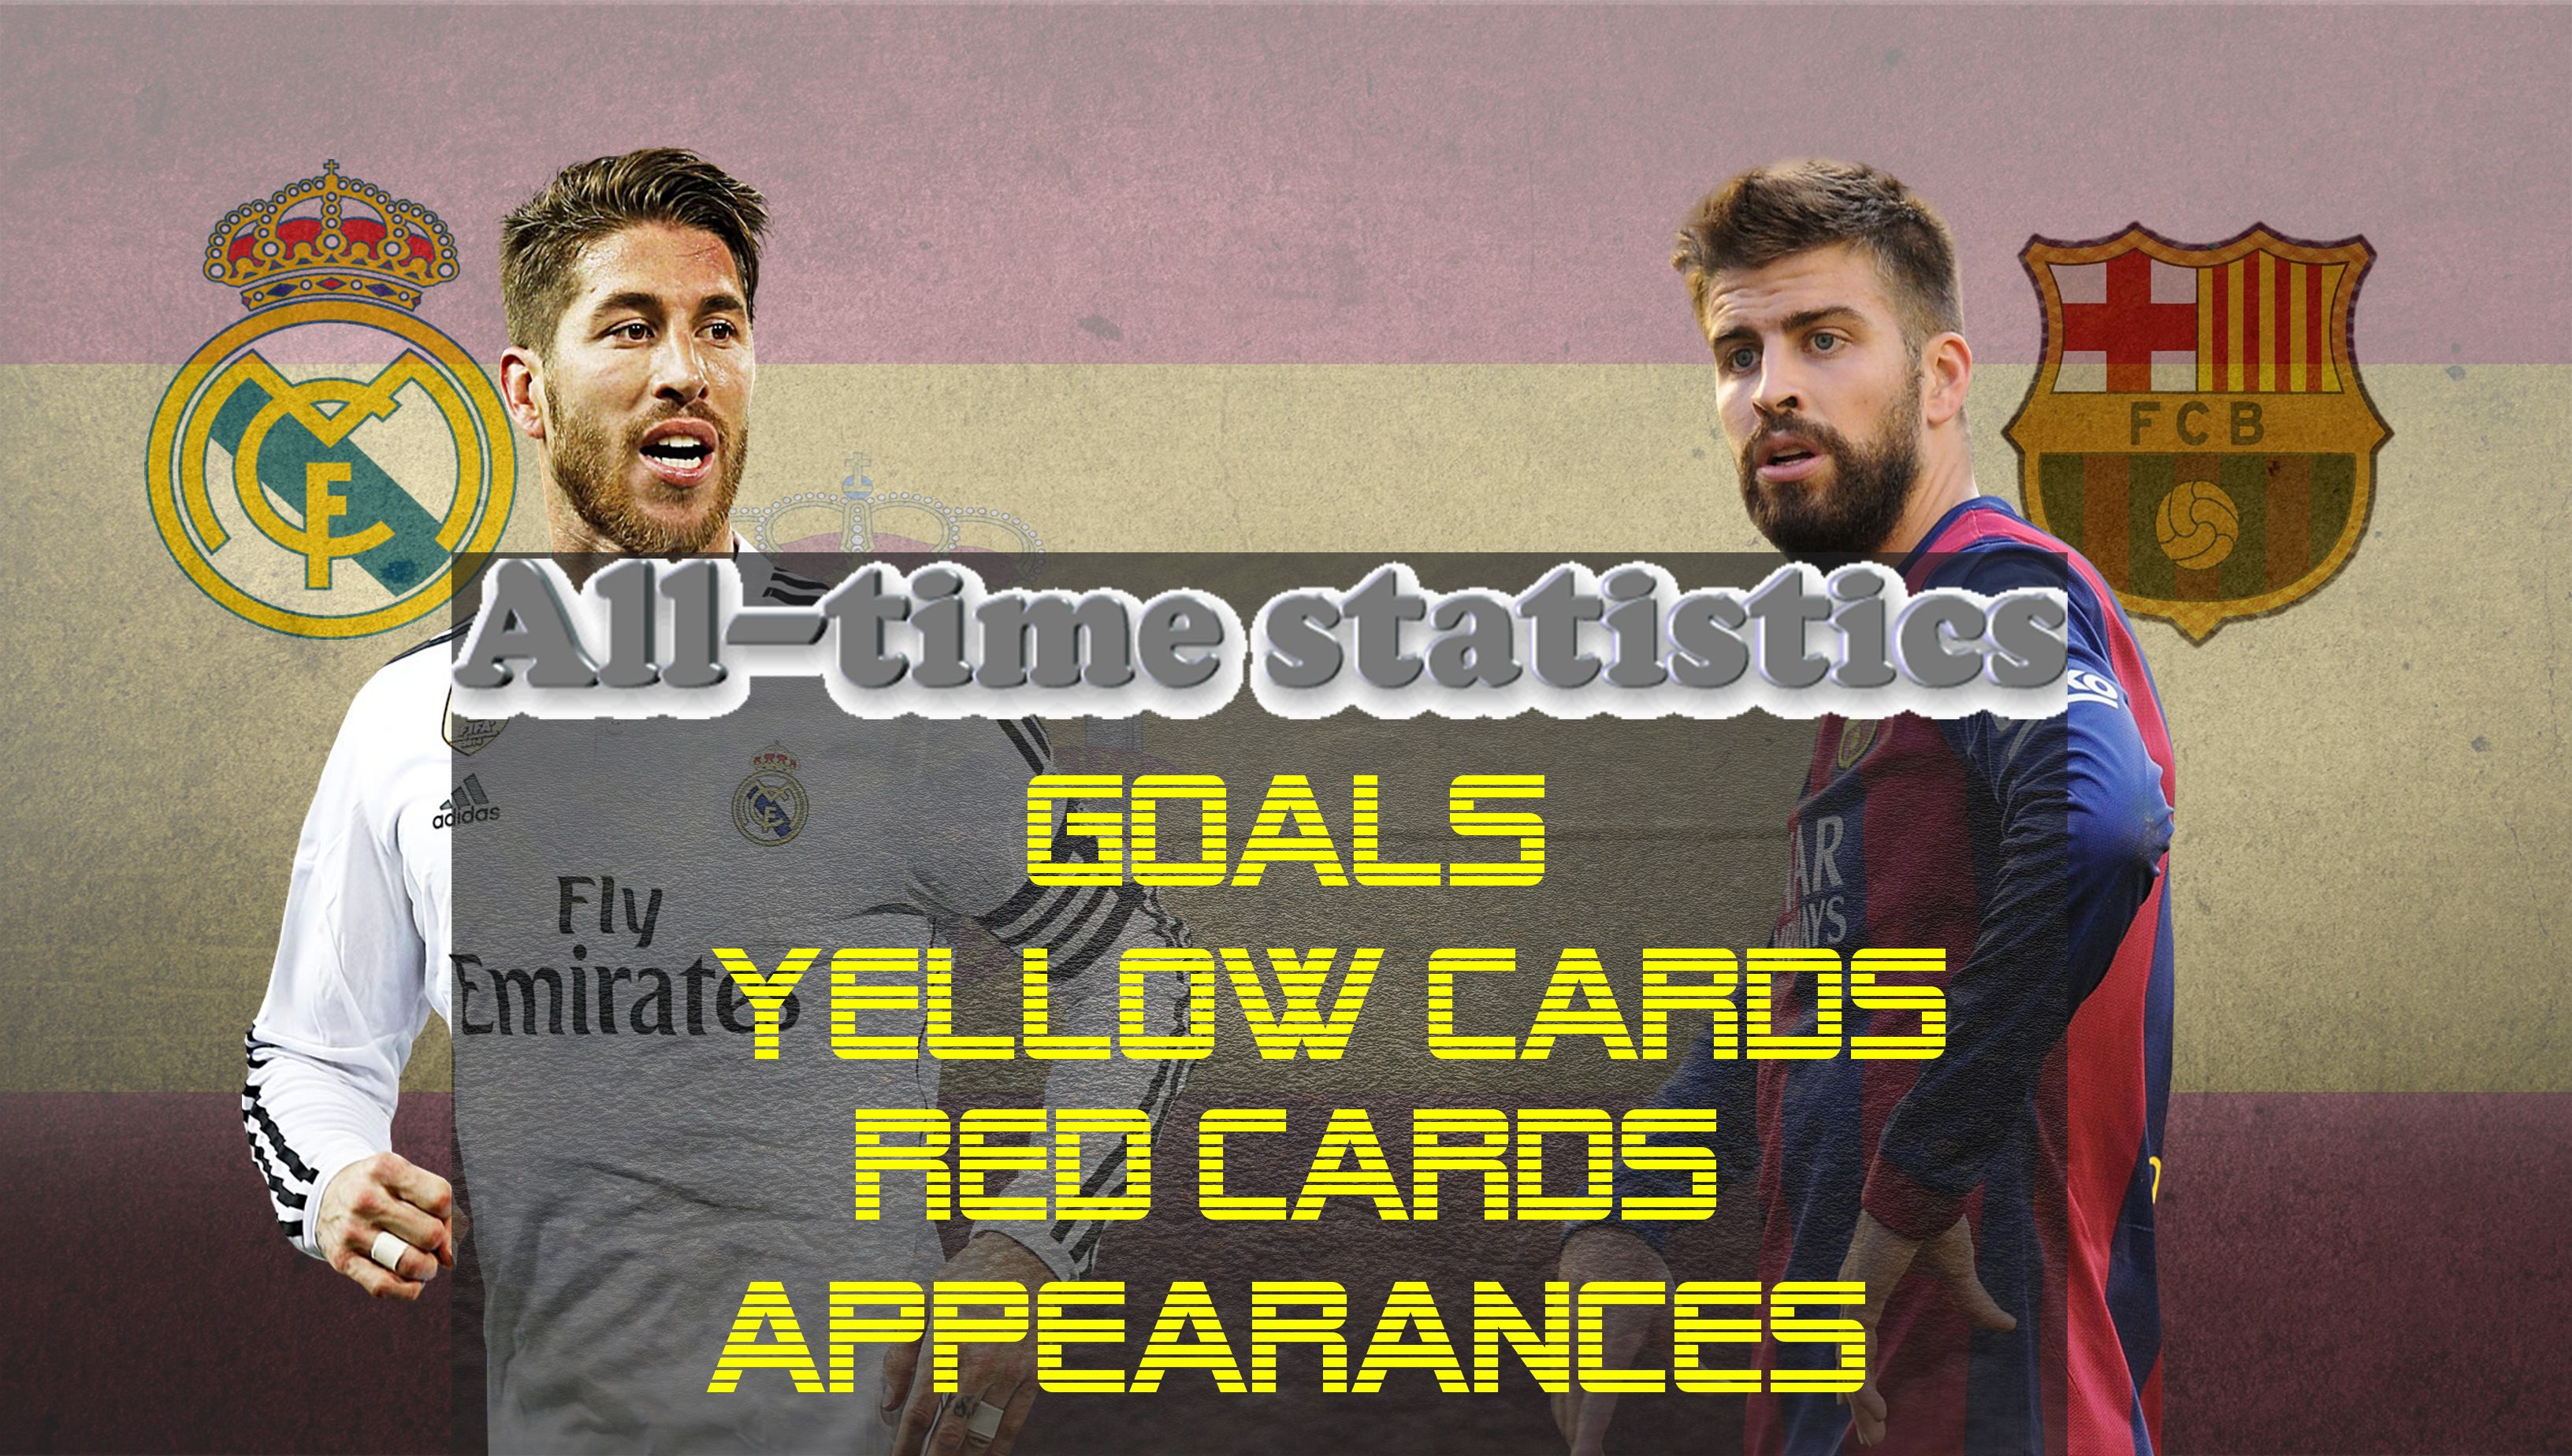 Sergio Ramos Vs Gerard Pique The Statistics Will Include The Playing Style Of Both Players Career Statistics La Lig Youtube Views Promotional Video Youtube